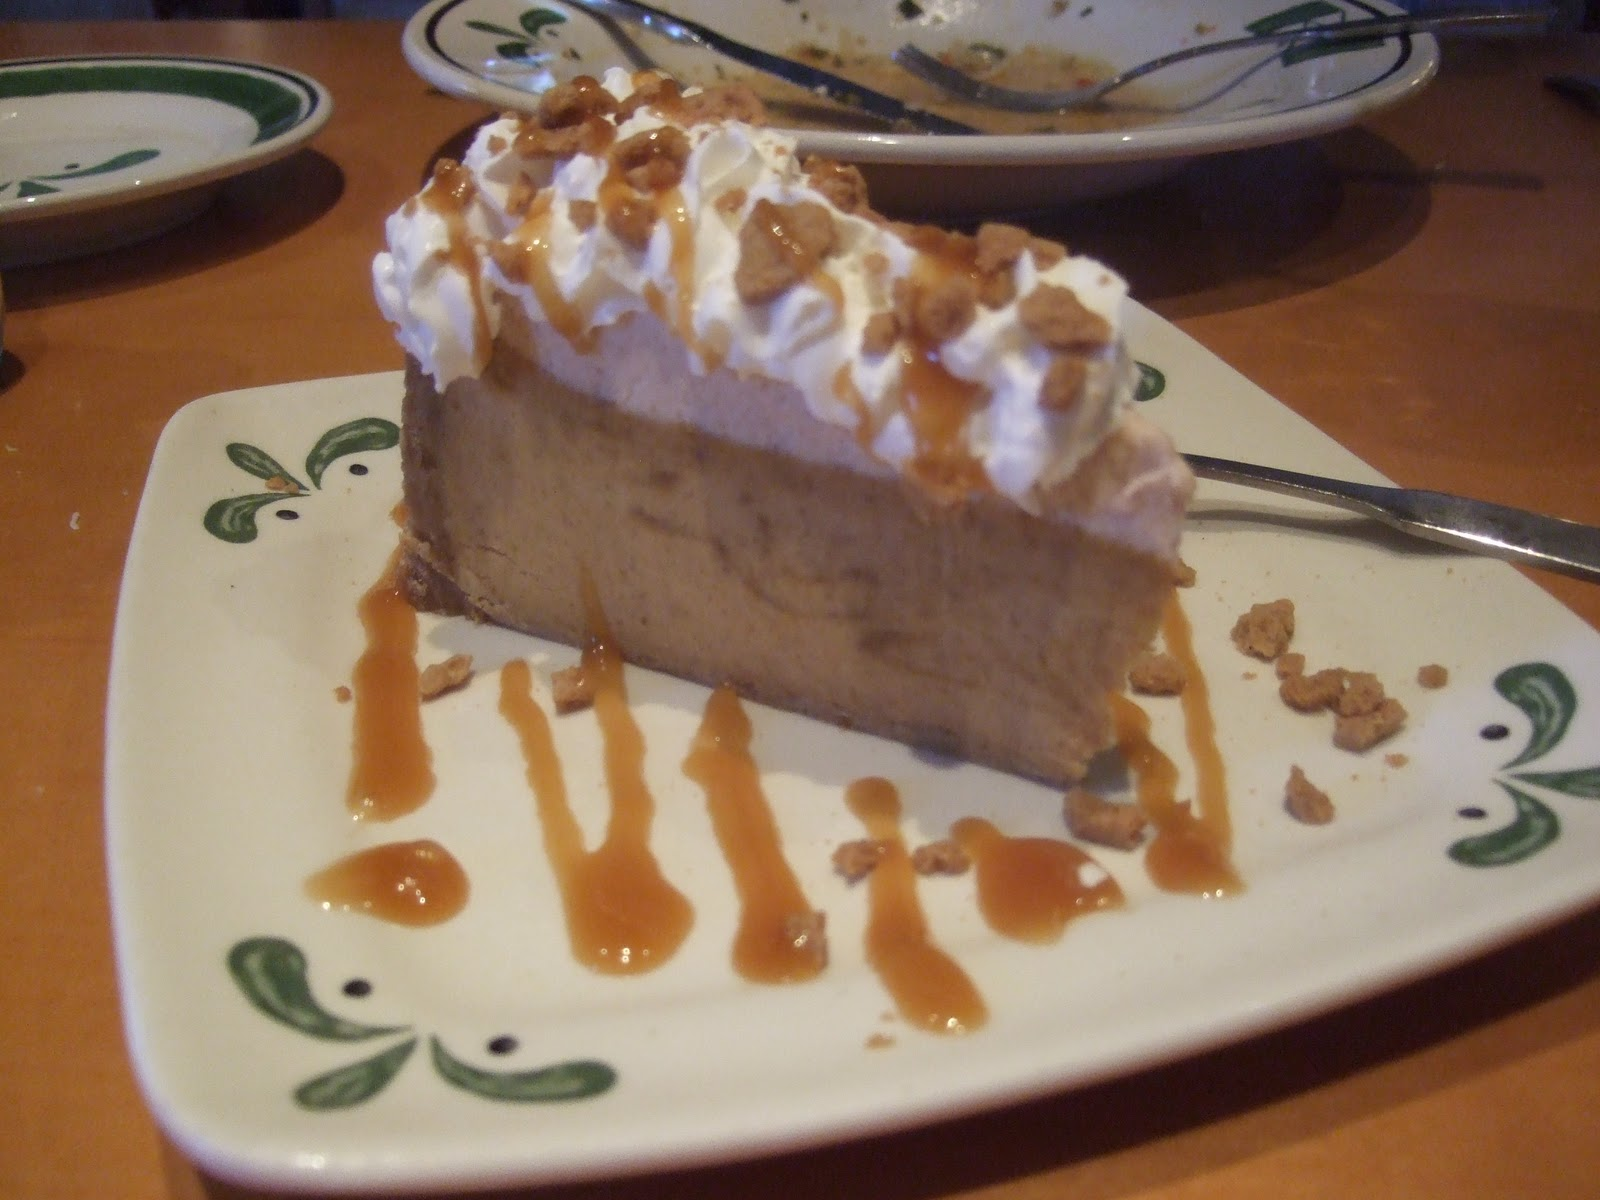 Olive Garden White Chocolate Raspberry Cheesecake Olive garden    Olive Garden White Chocolate Raspberry Cheesecake